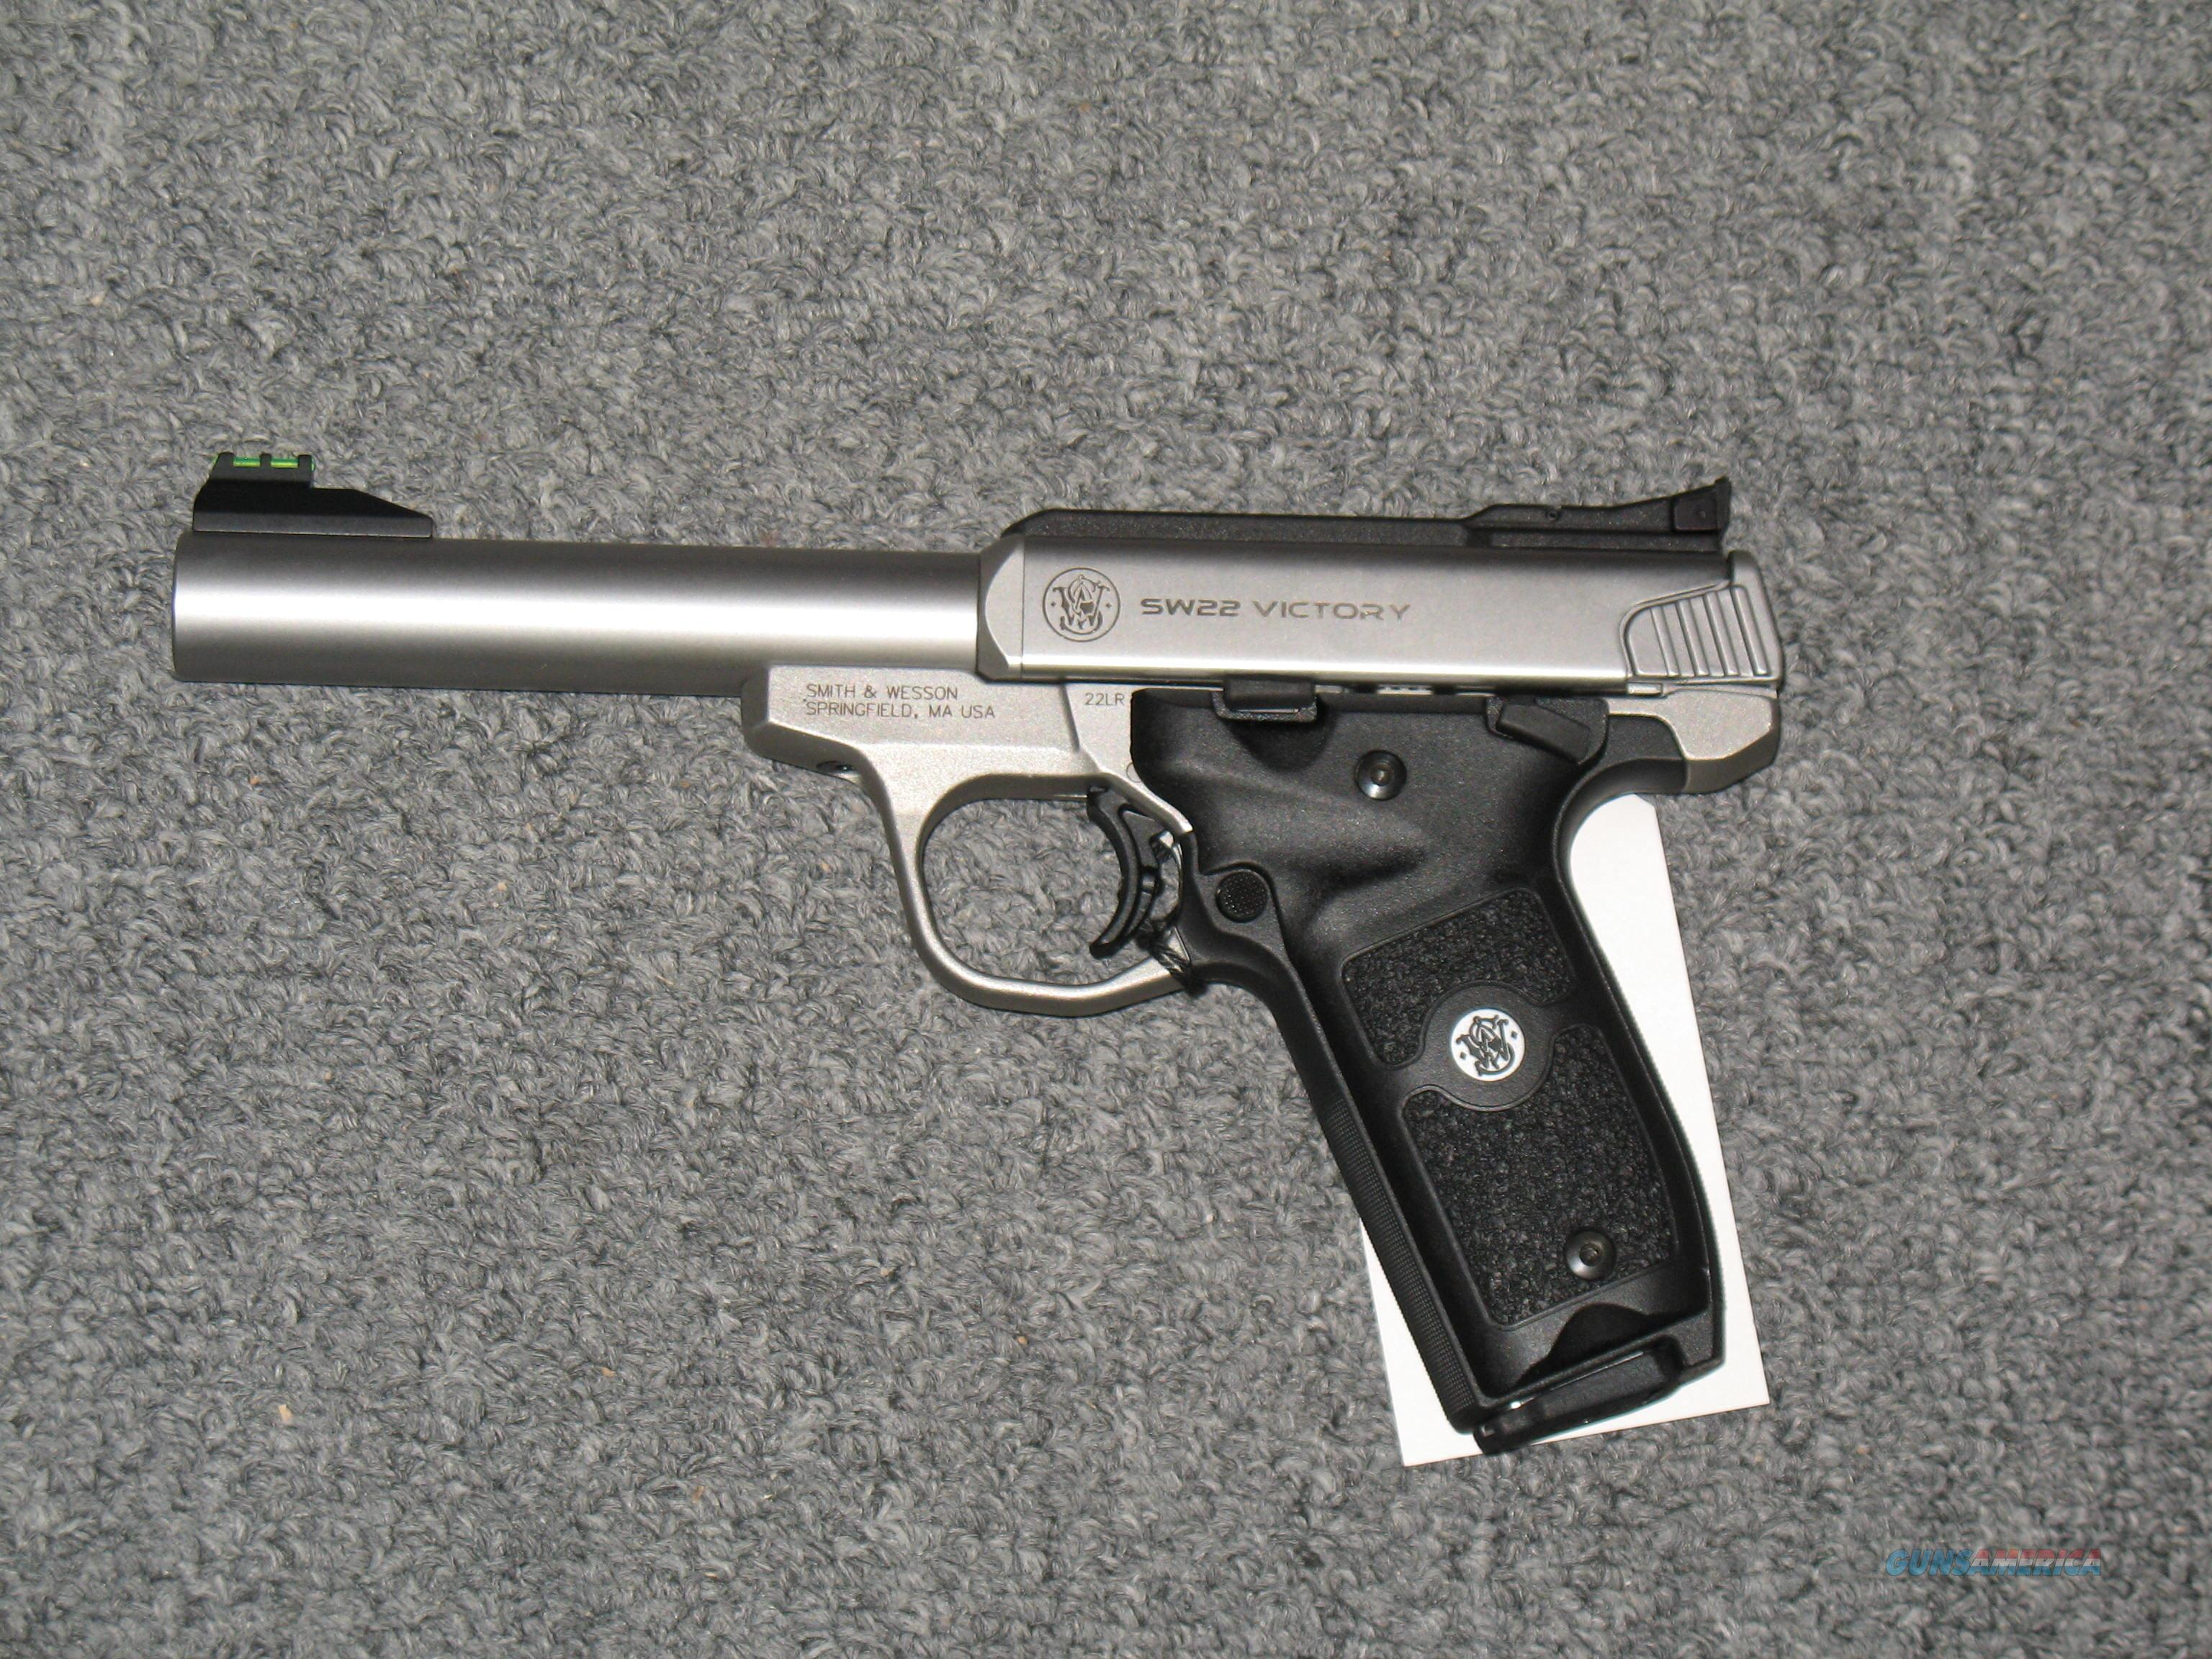 SW22 Victory w/2 10 rd mags  Guns > Pistols > Smith & Wesson Pistols - Autos > .22 Autos